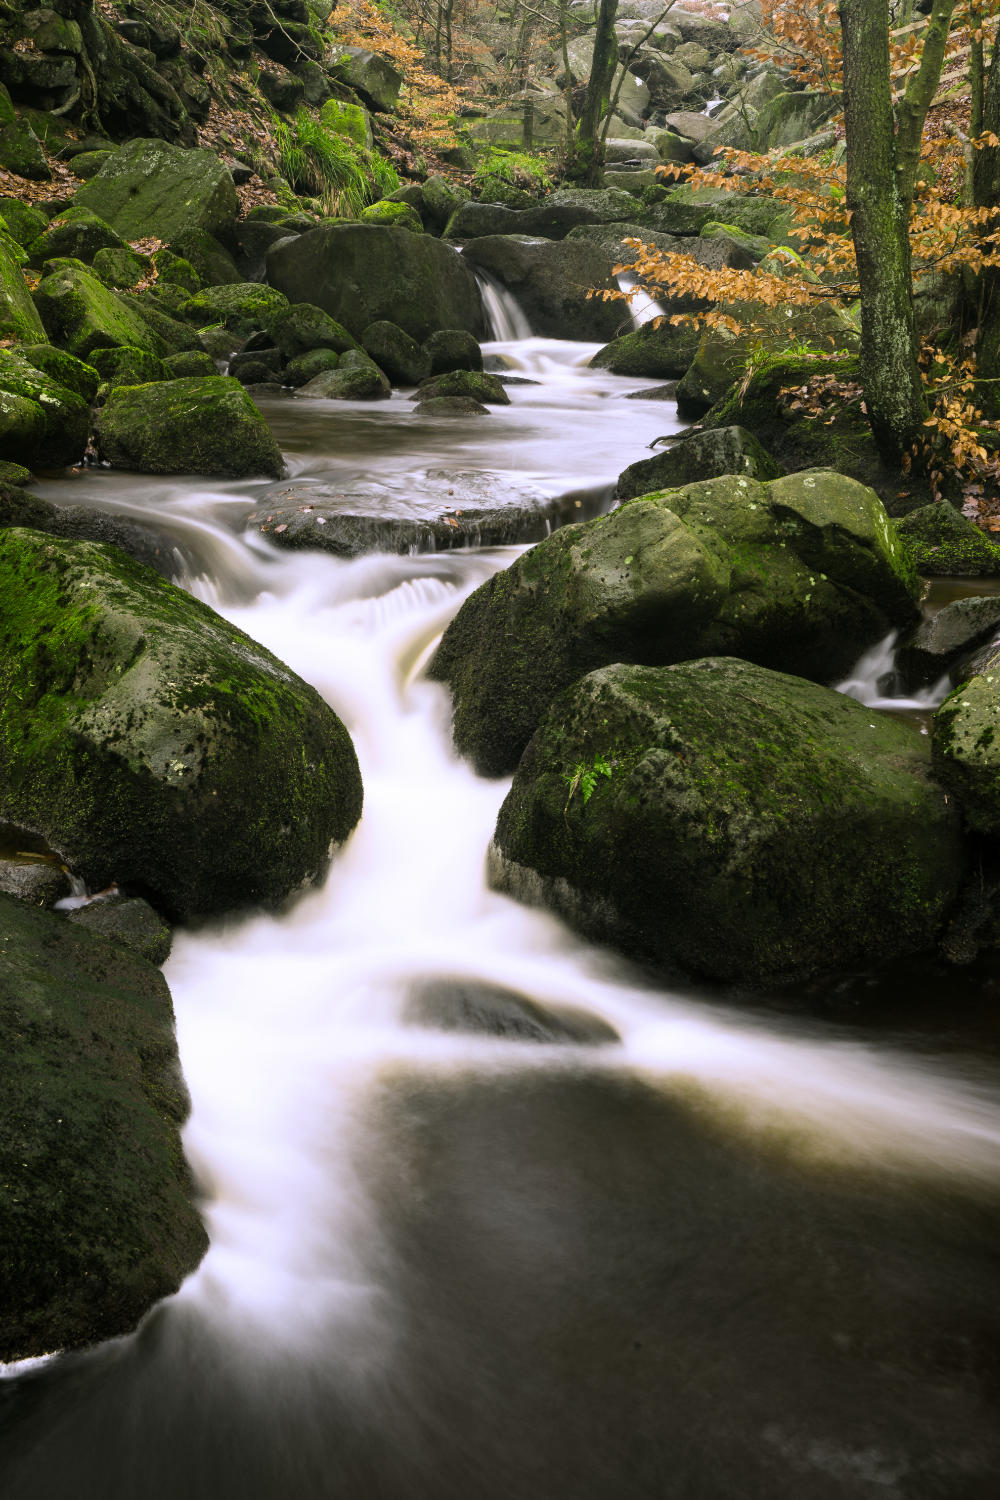 Tripod Tricks - A tripod is essential if you want to capture long exposures such as here to slow down and blur the water.